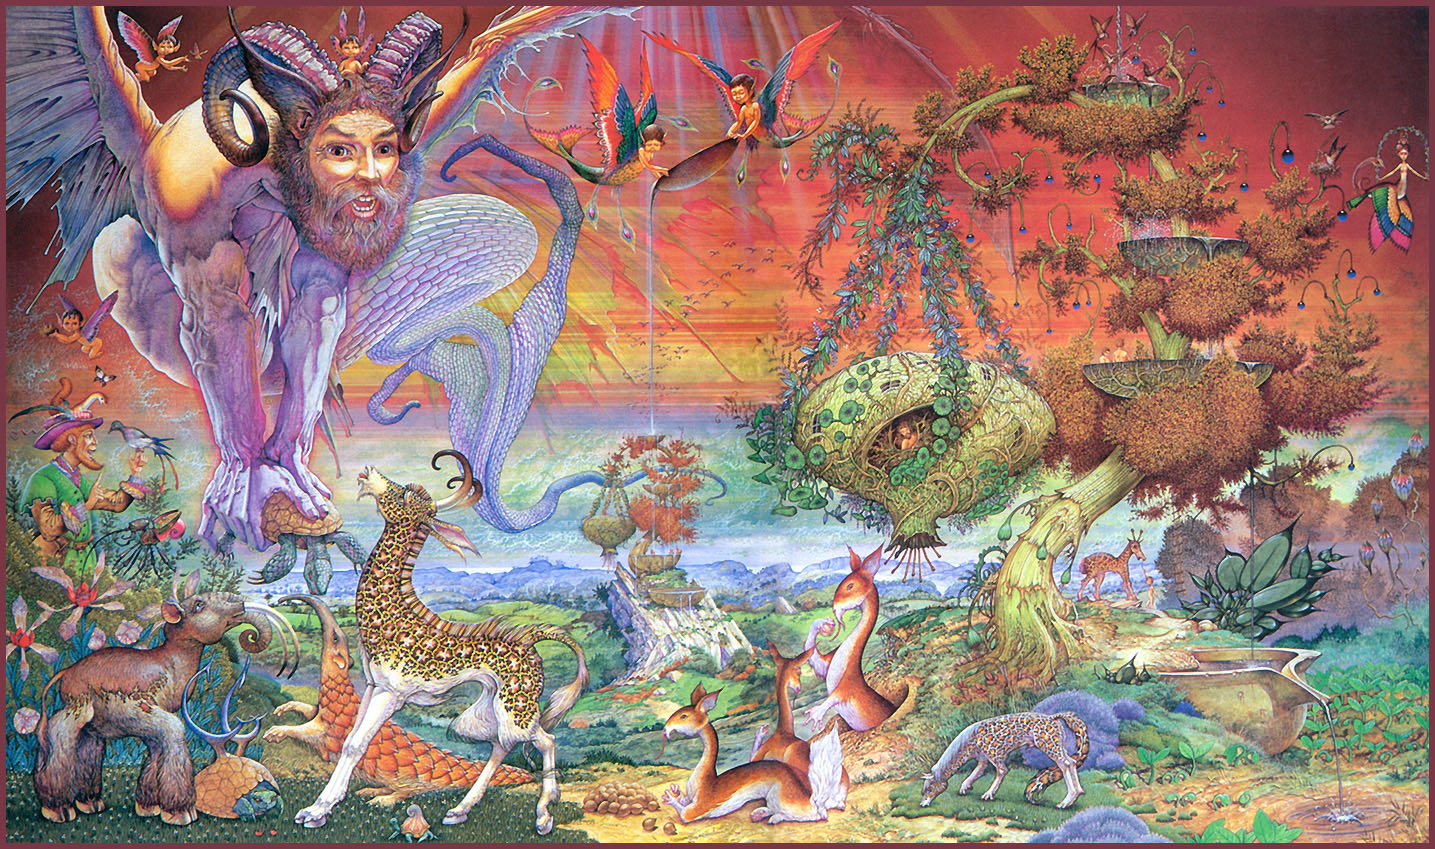 32_Patrick_Woodroffe_PeacetheHappySavage